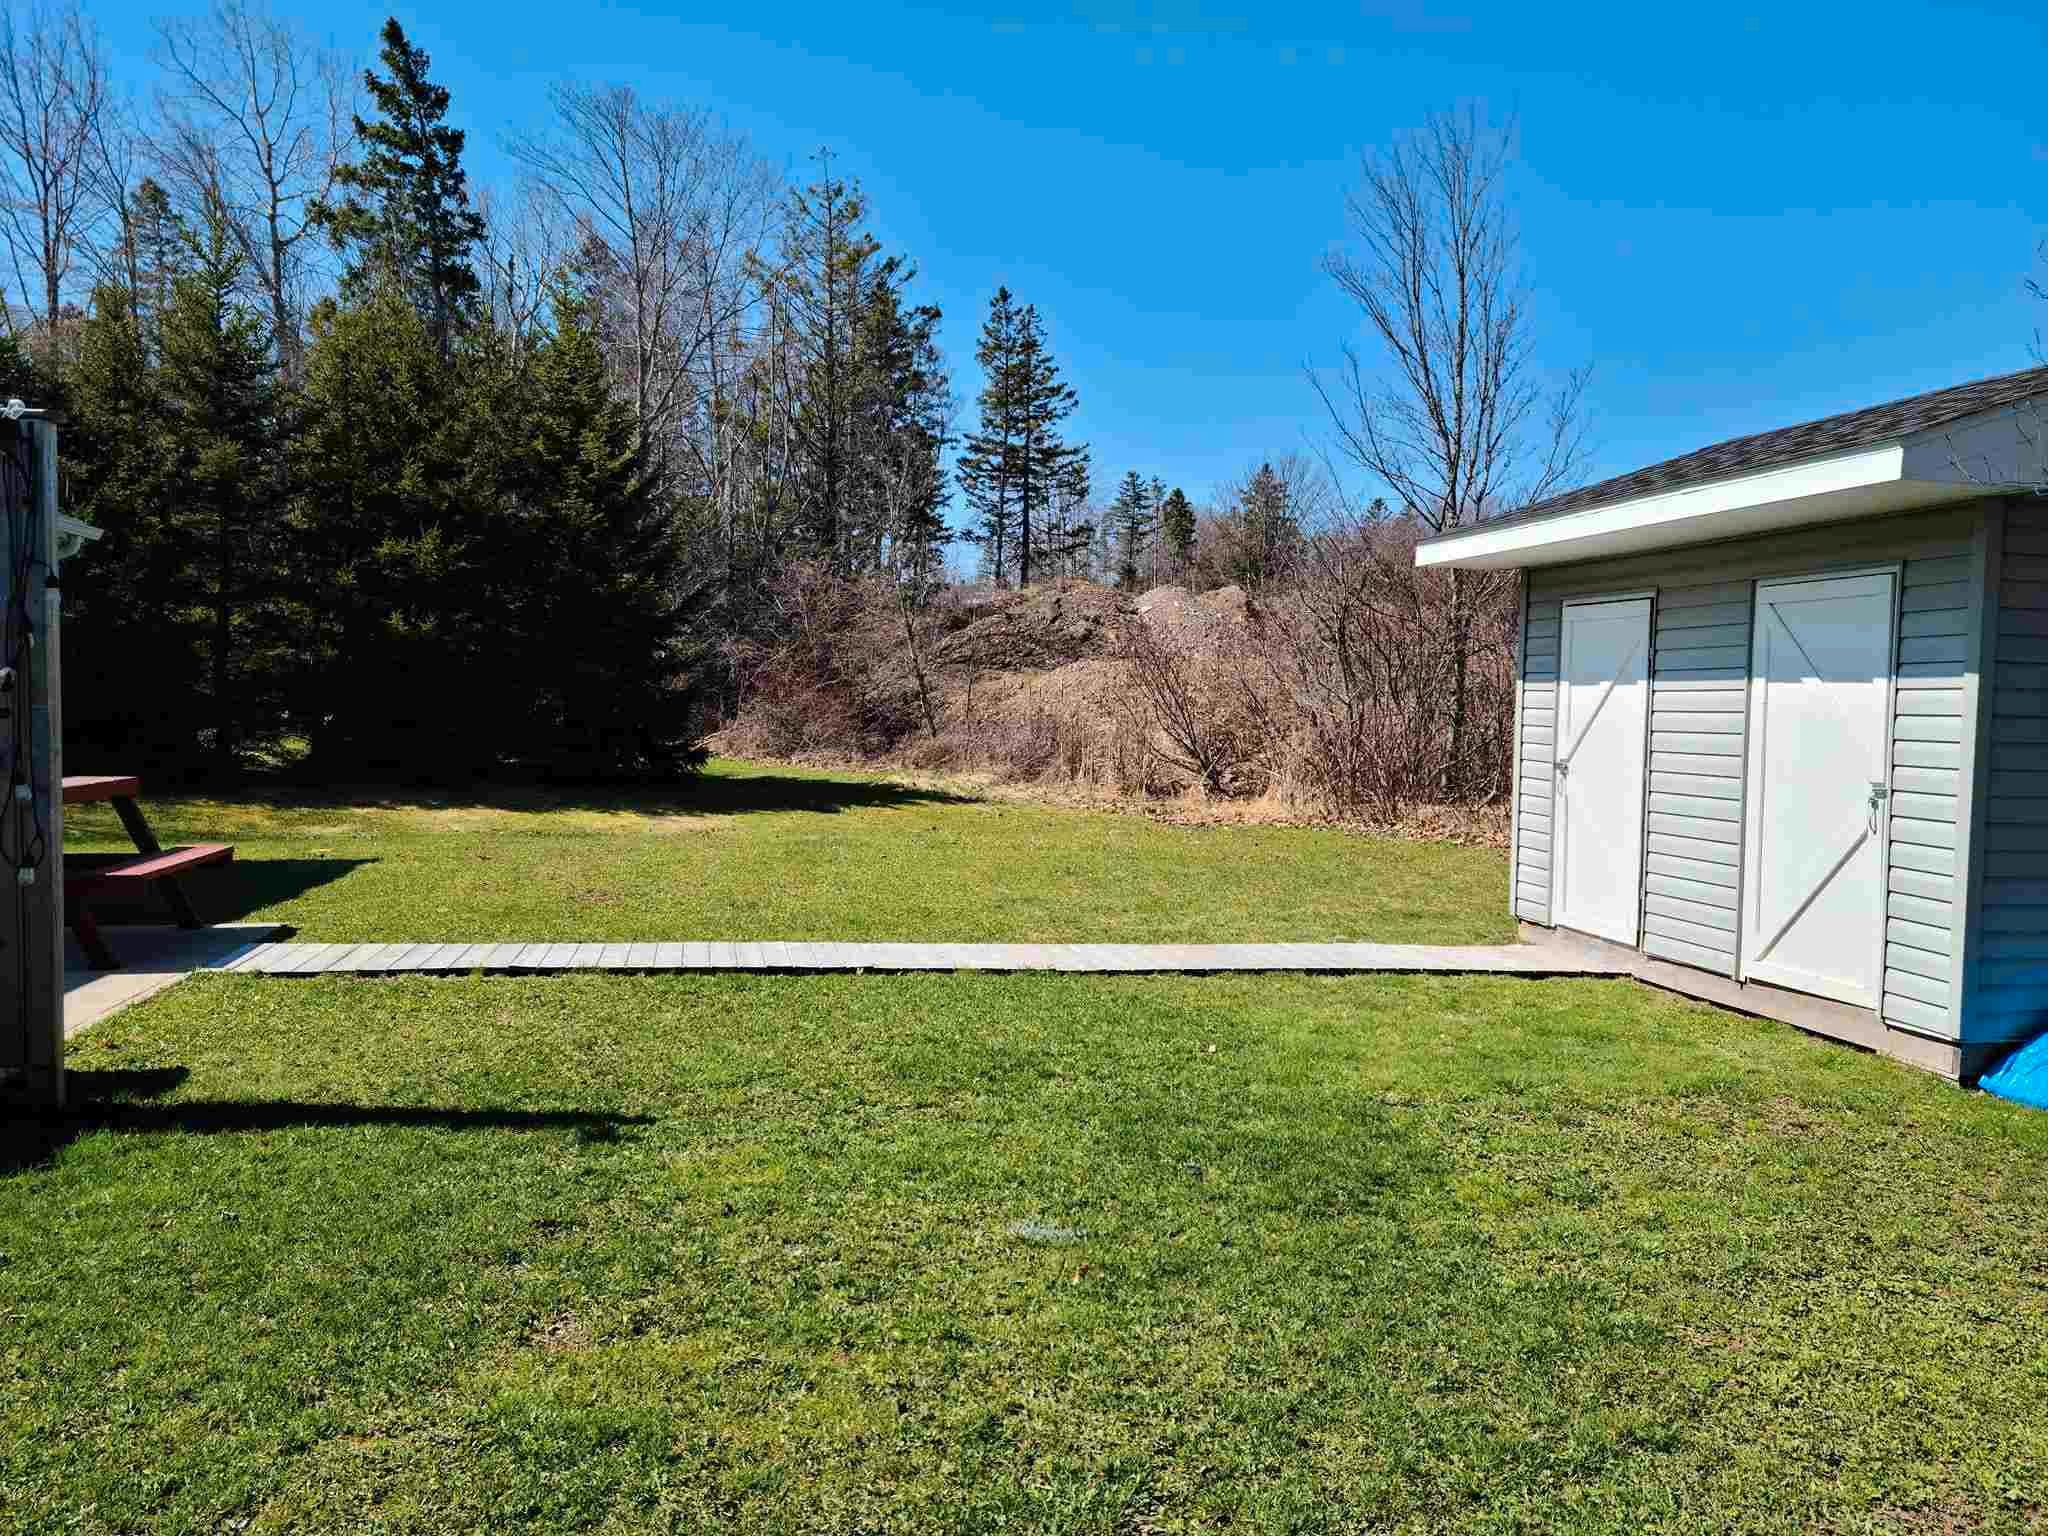 Photo 5: Photos: 131 Waller Drive in Truro: 104-Truro/Bible Hill/Brookfield Multi-Family for sale (Northern Region)  : MLS®# 202110237